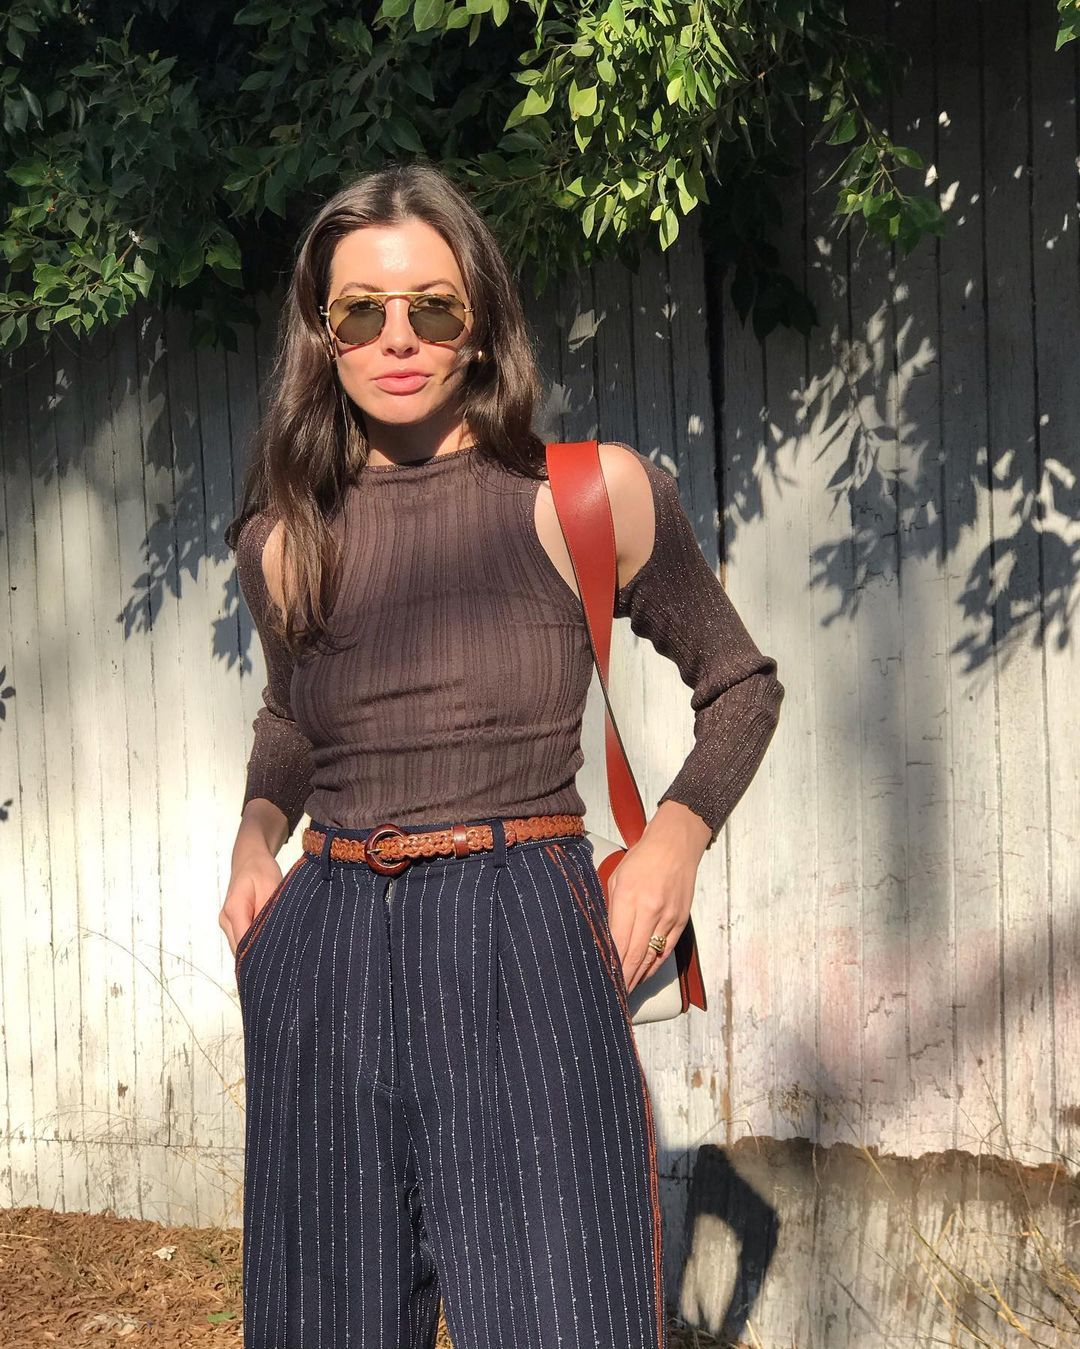 5 Autumn Trends Who What Wear Editors Are Very Into This Season